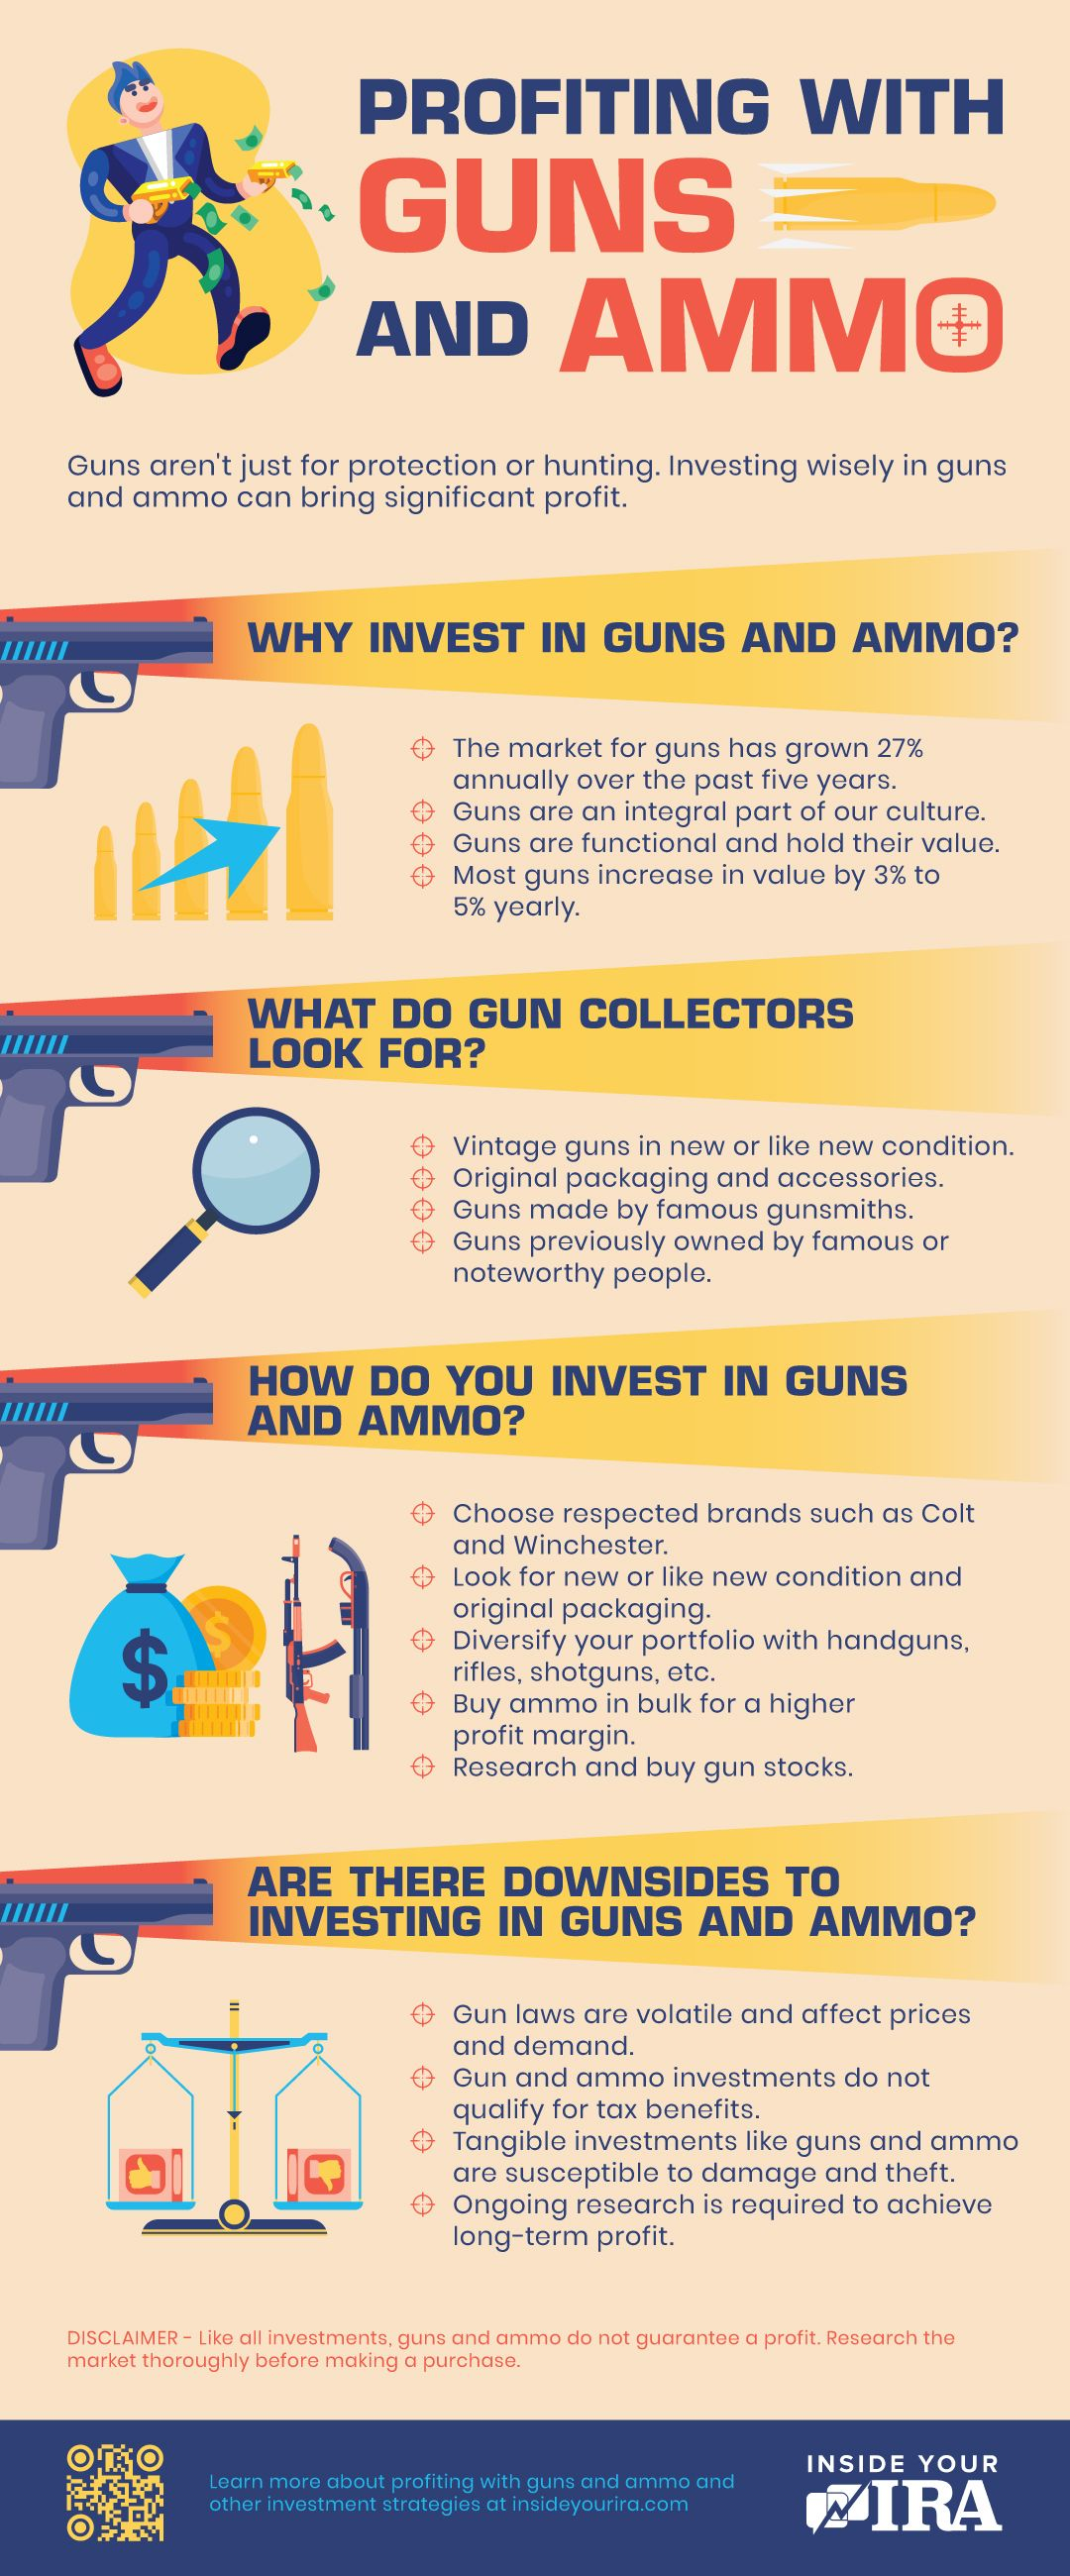 Profiting With Guns and Ammo [INFOGRAPHIC] | Inside Your IRA